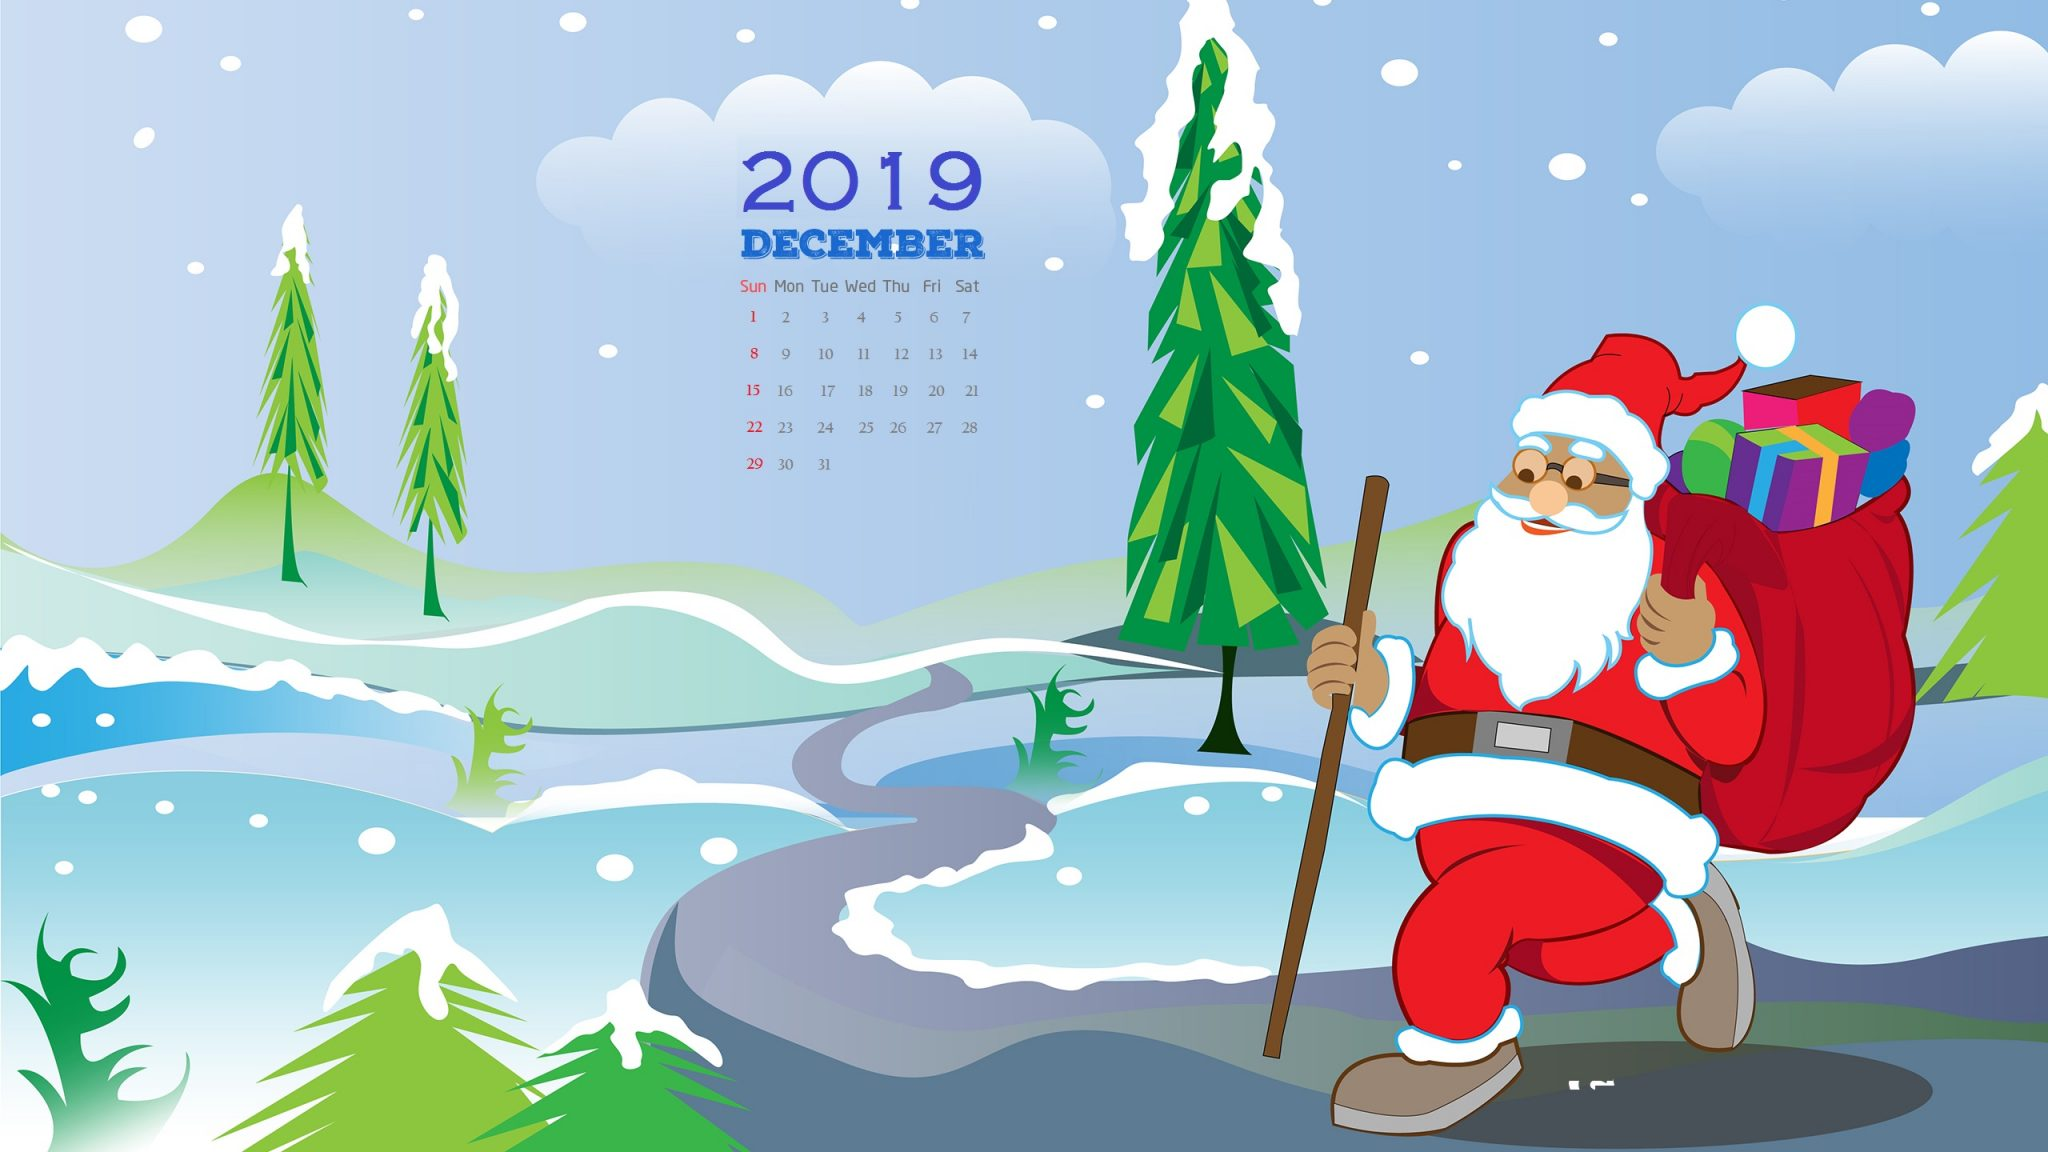 December 2019 HD Calendar Wallpaper